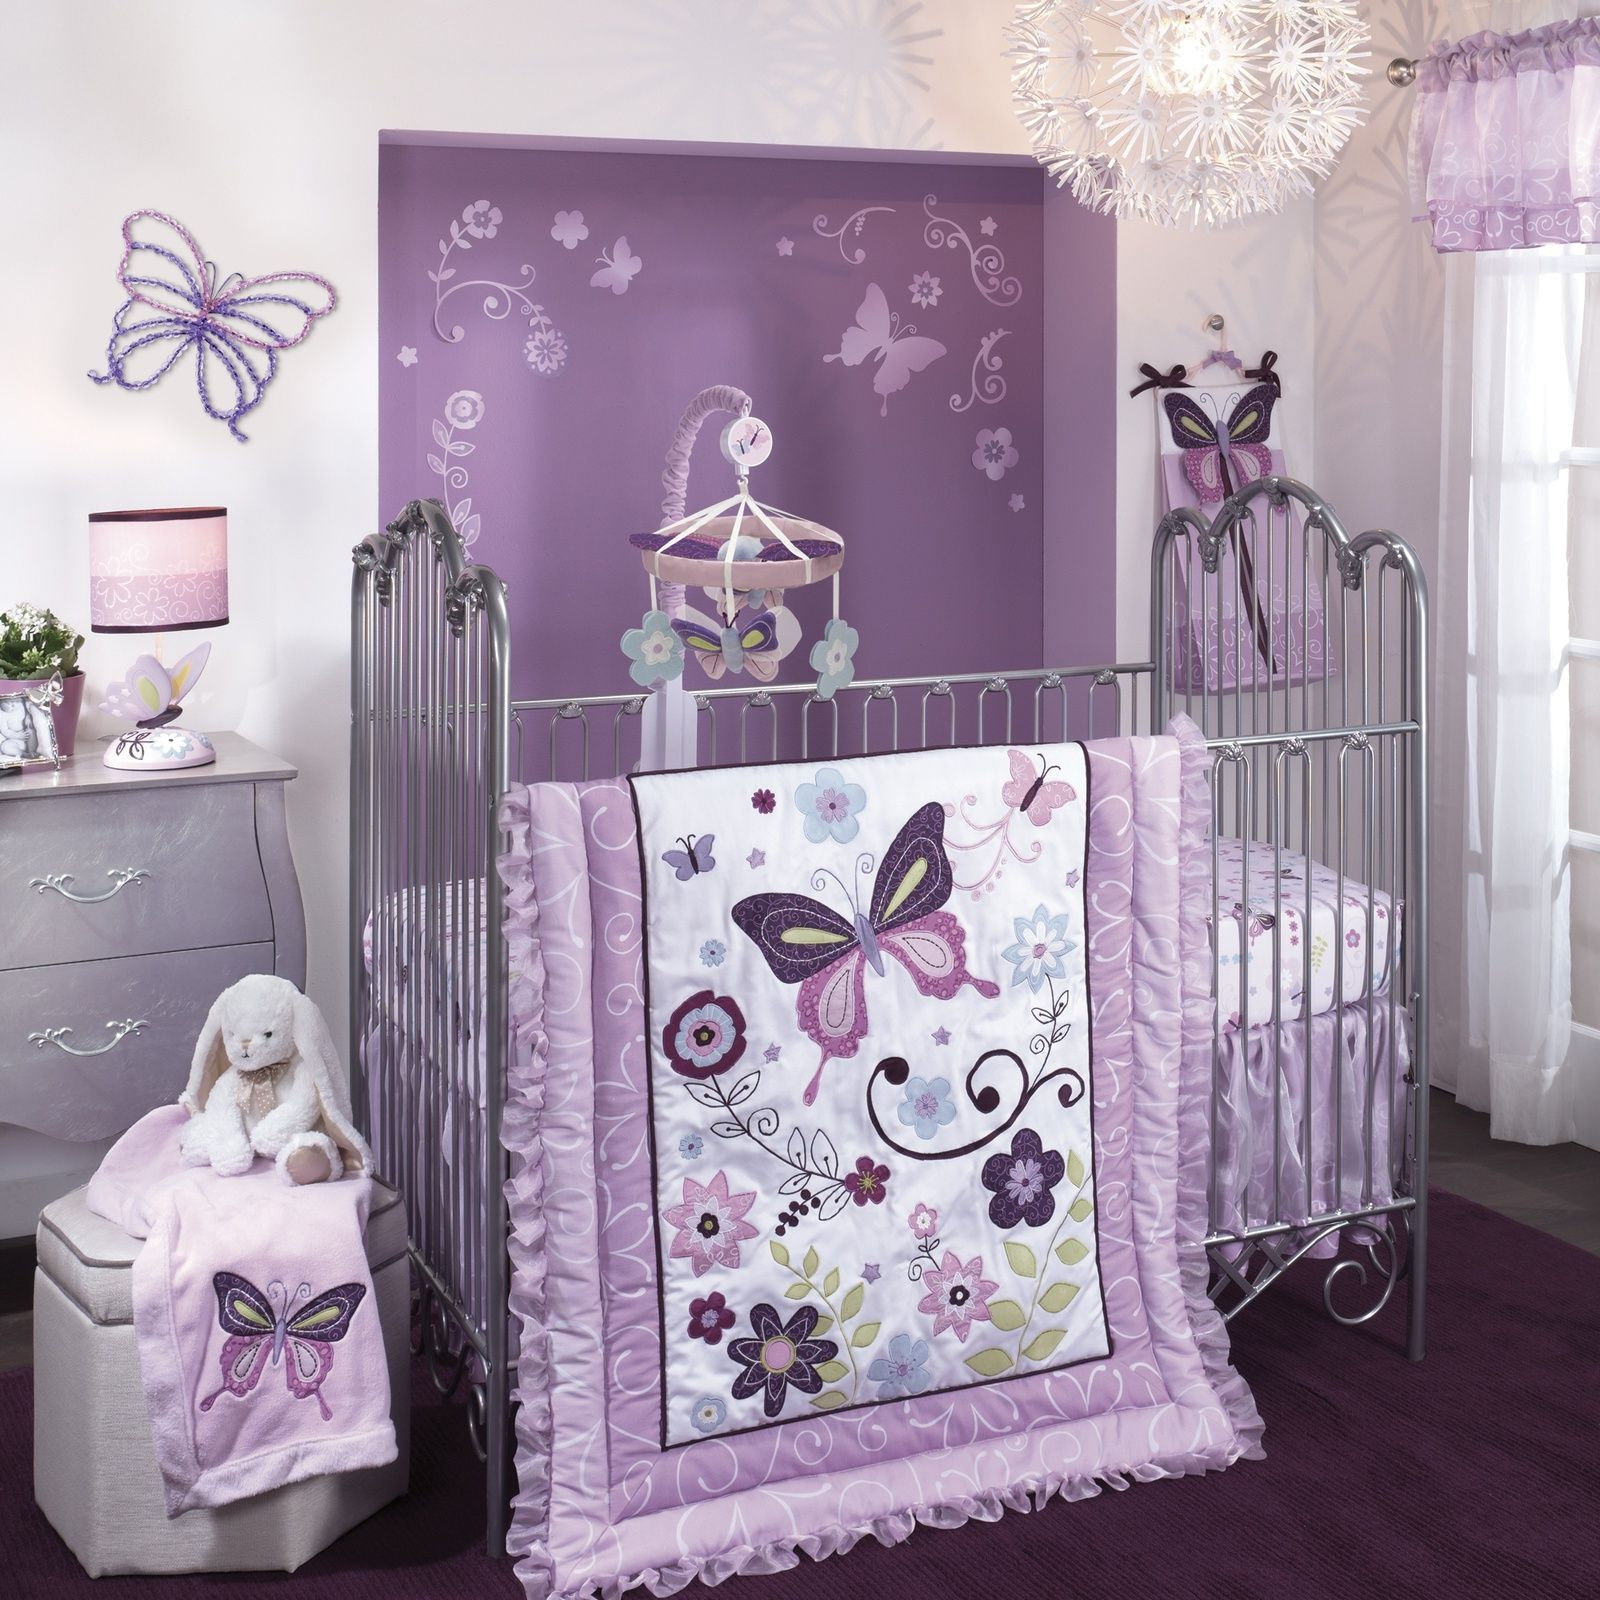 Bedroom cozy purple theme girl nursery ideas lambs and for Baby girl bedroom decoration